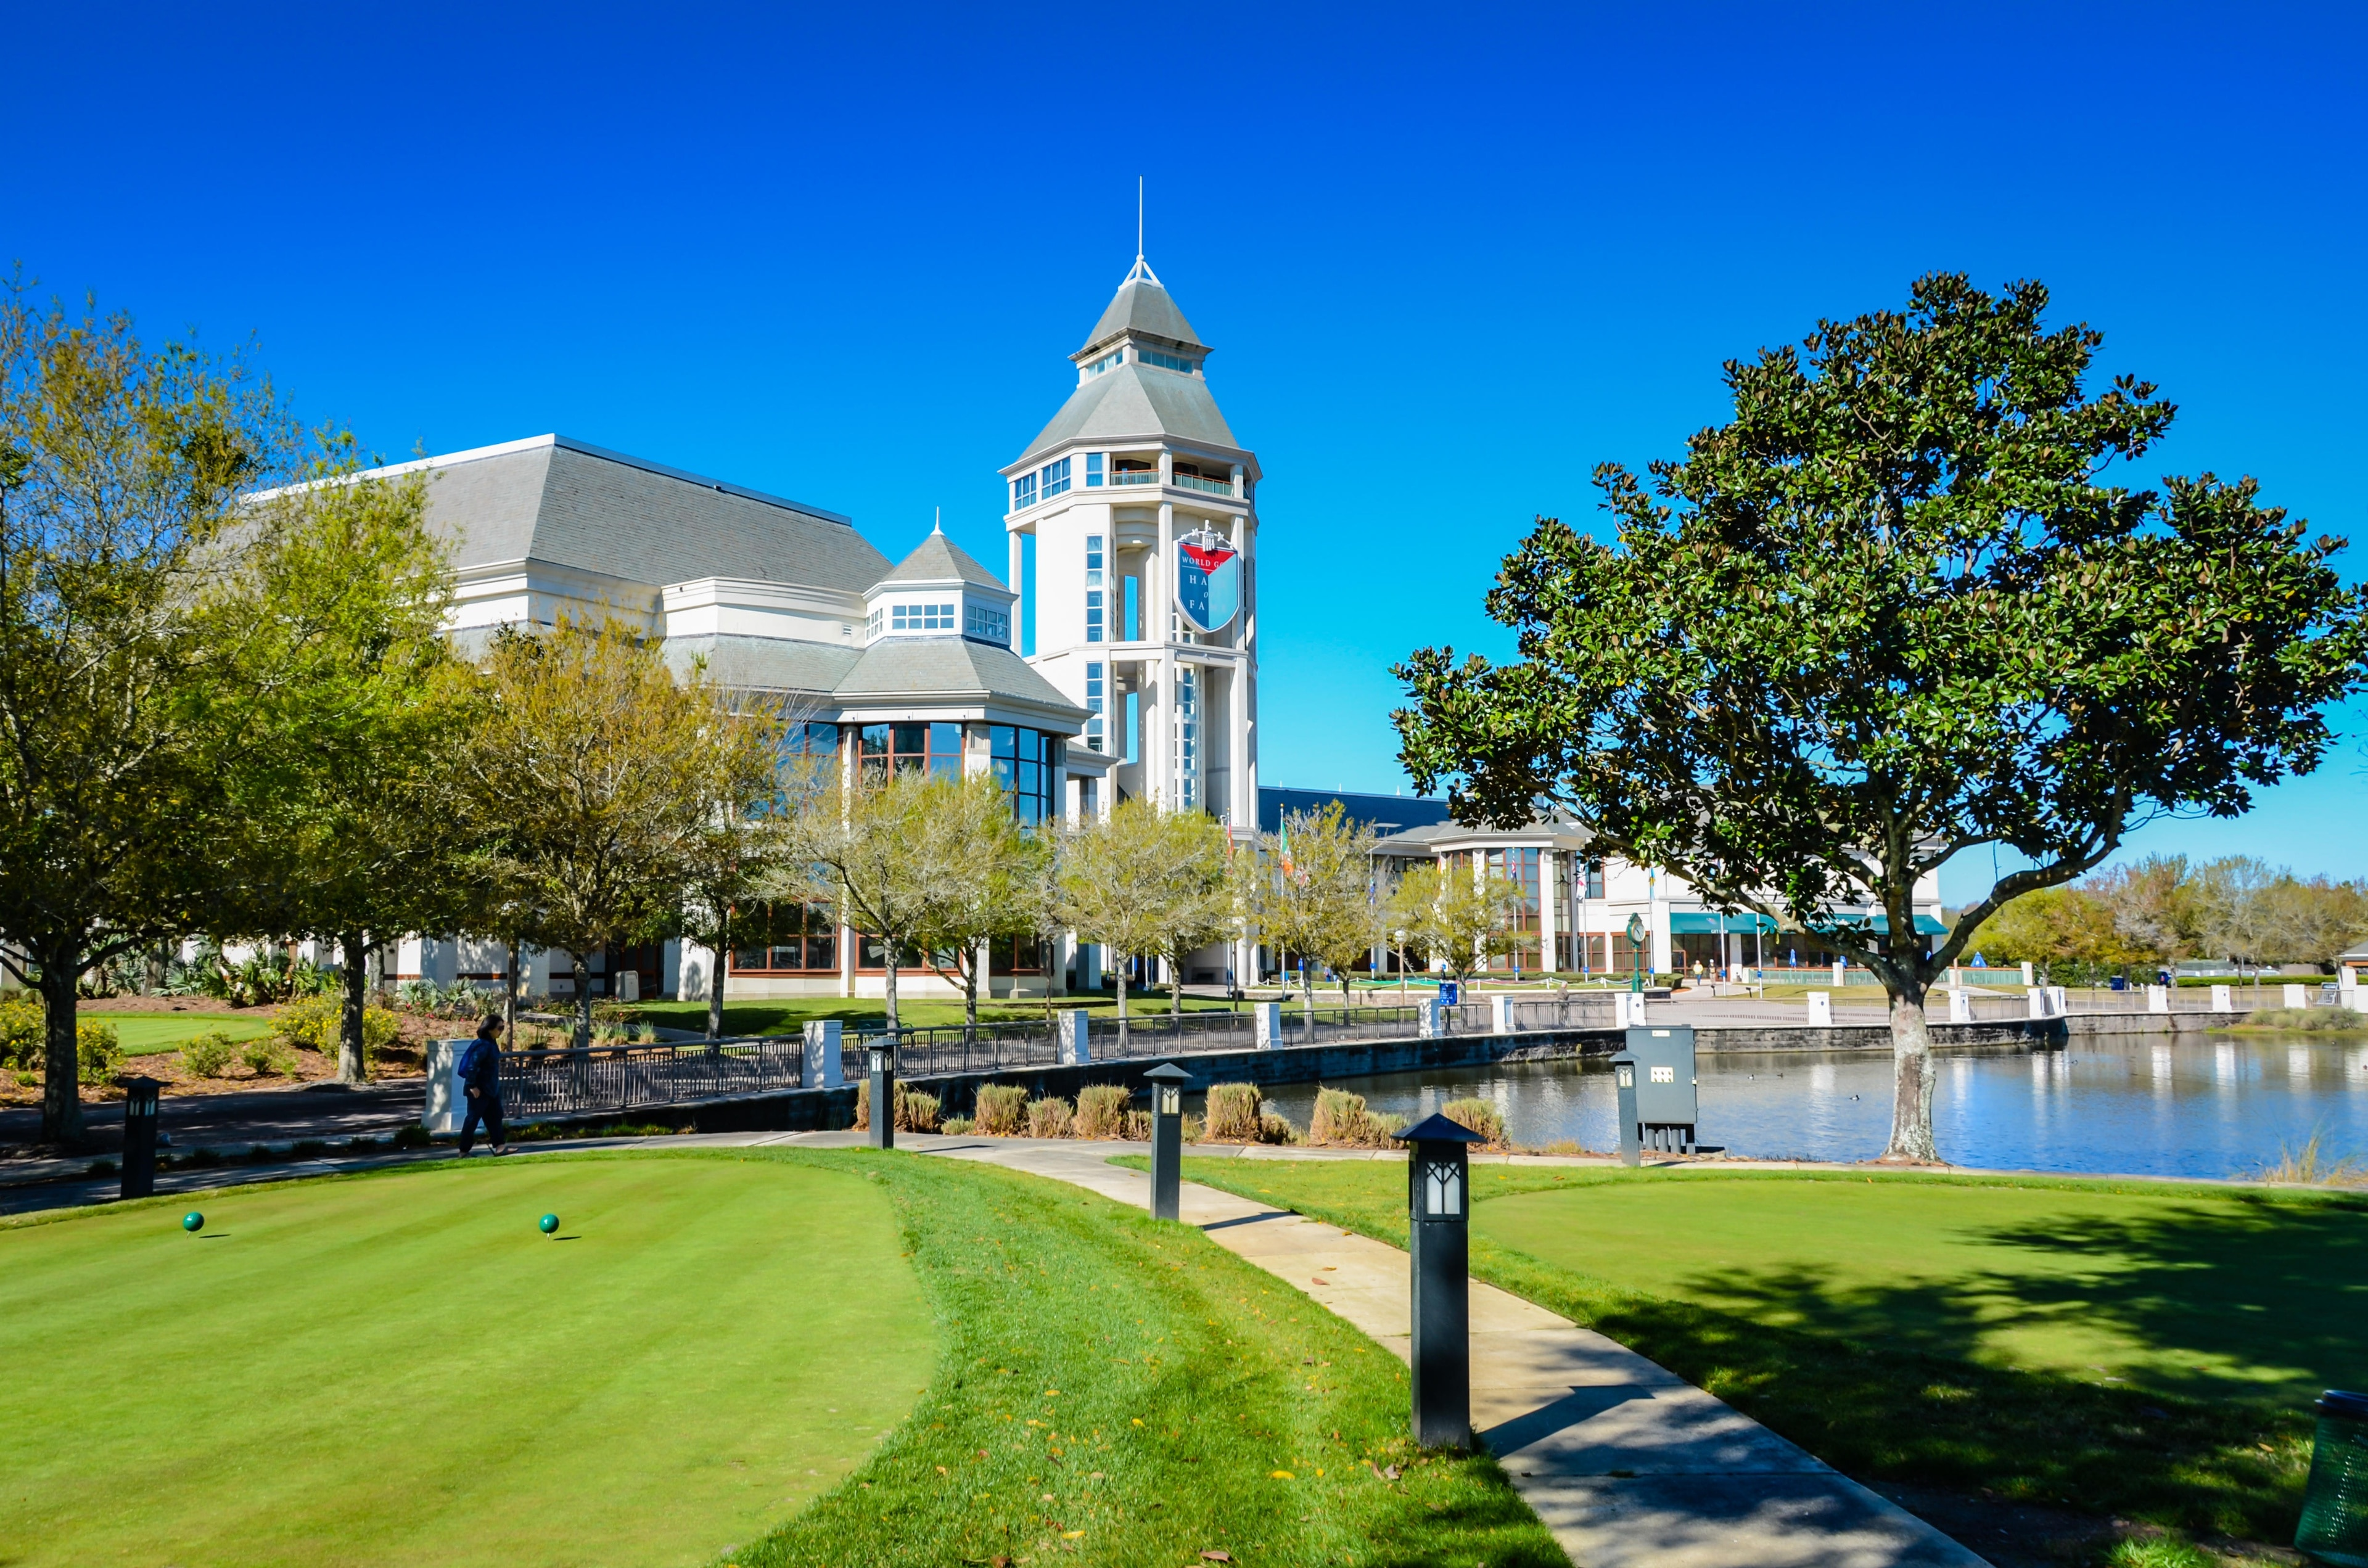 Enjoy a round of golf in St. Augustine at World Golf Village. Amble around this quaint area's beautiful beaches or attend a sporting event.